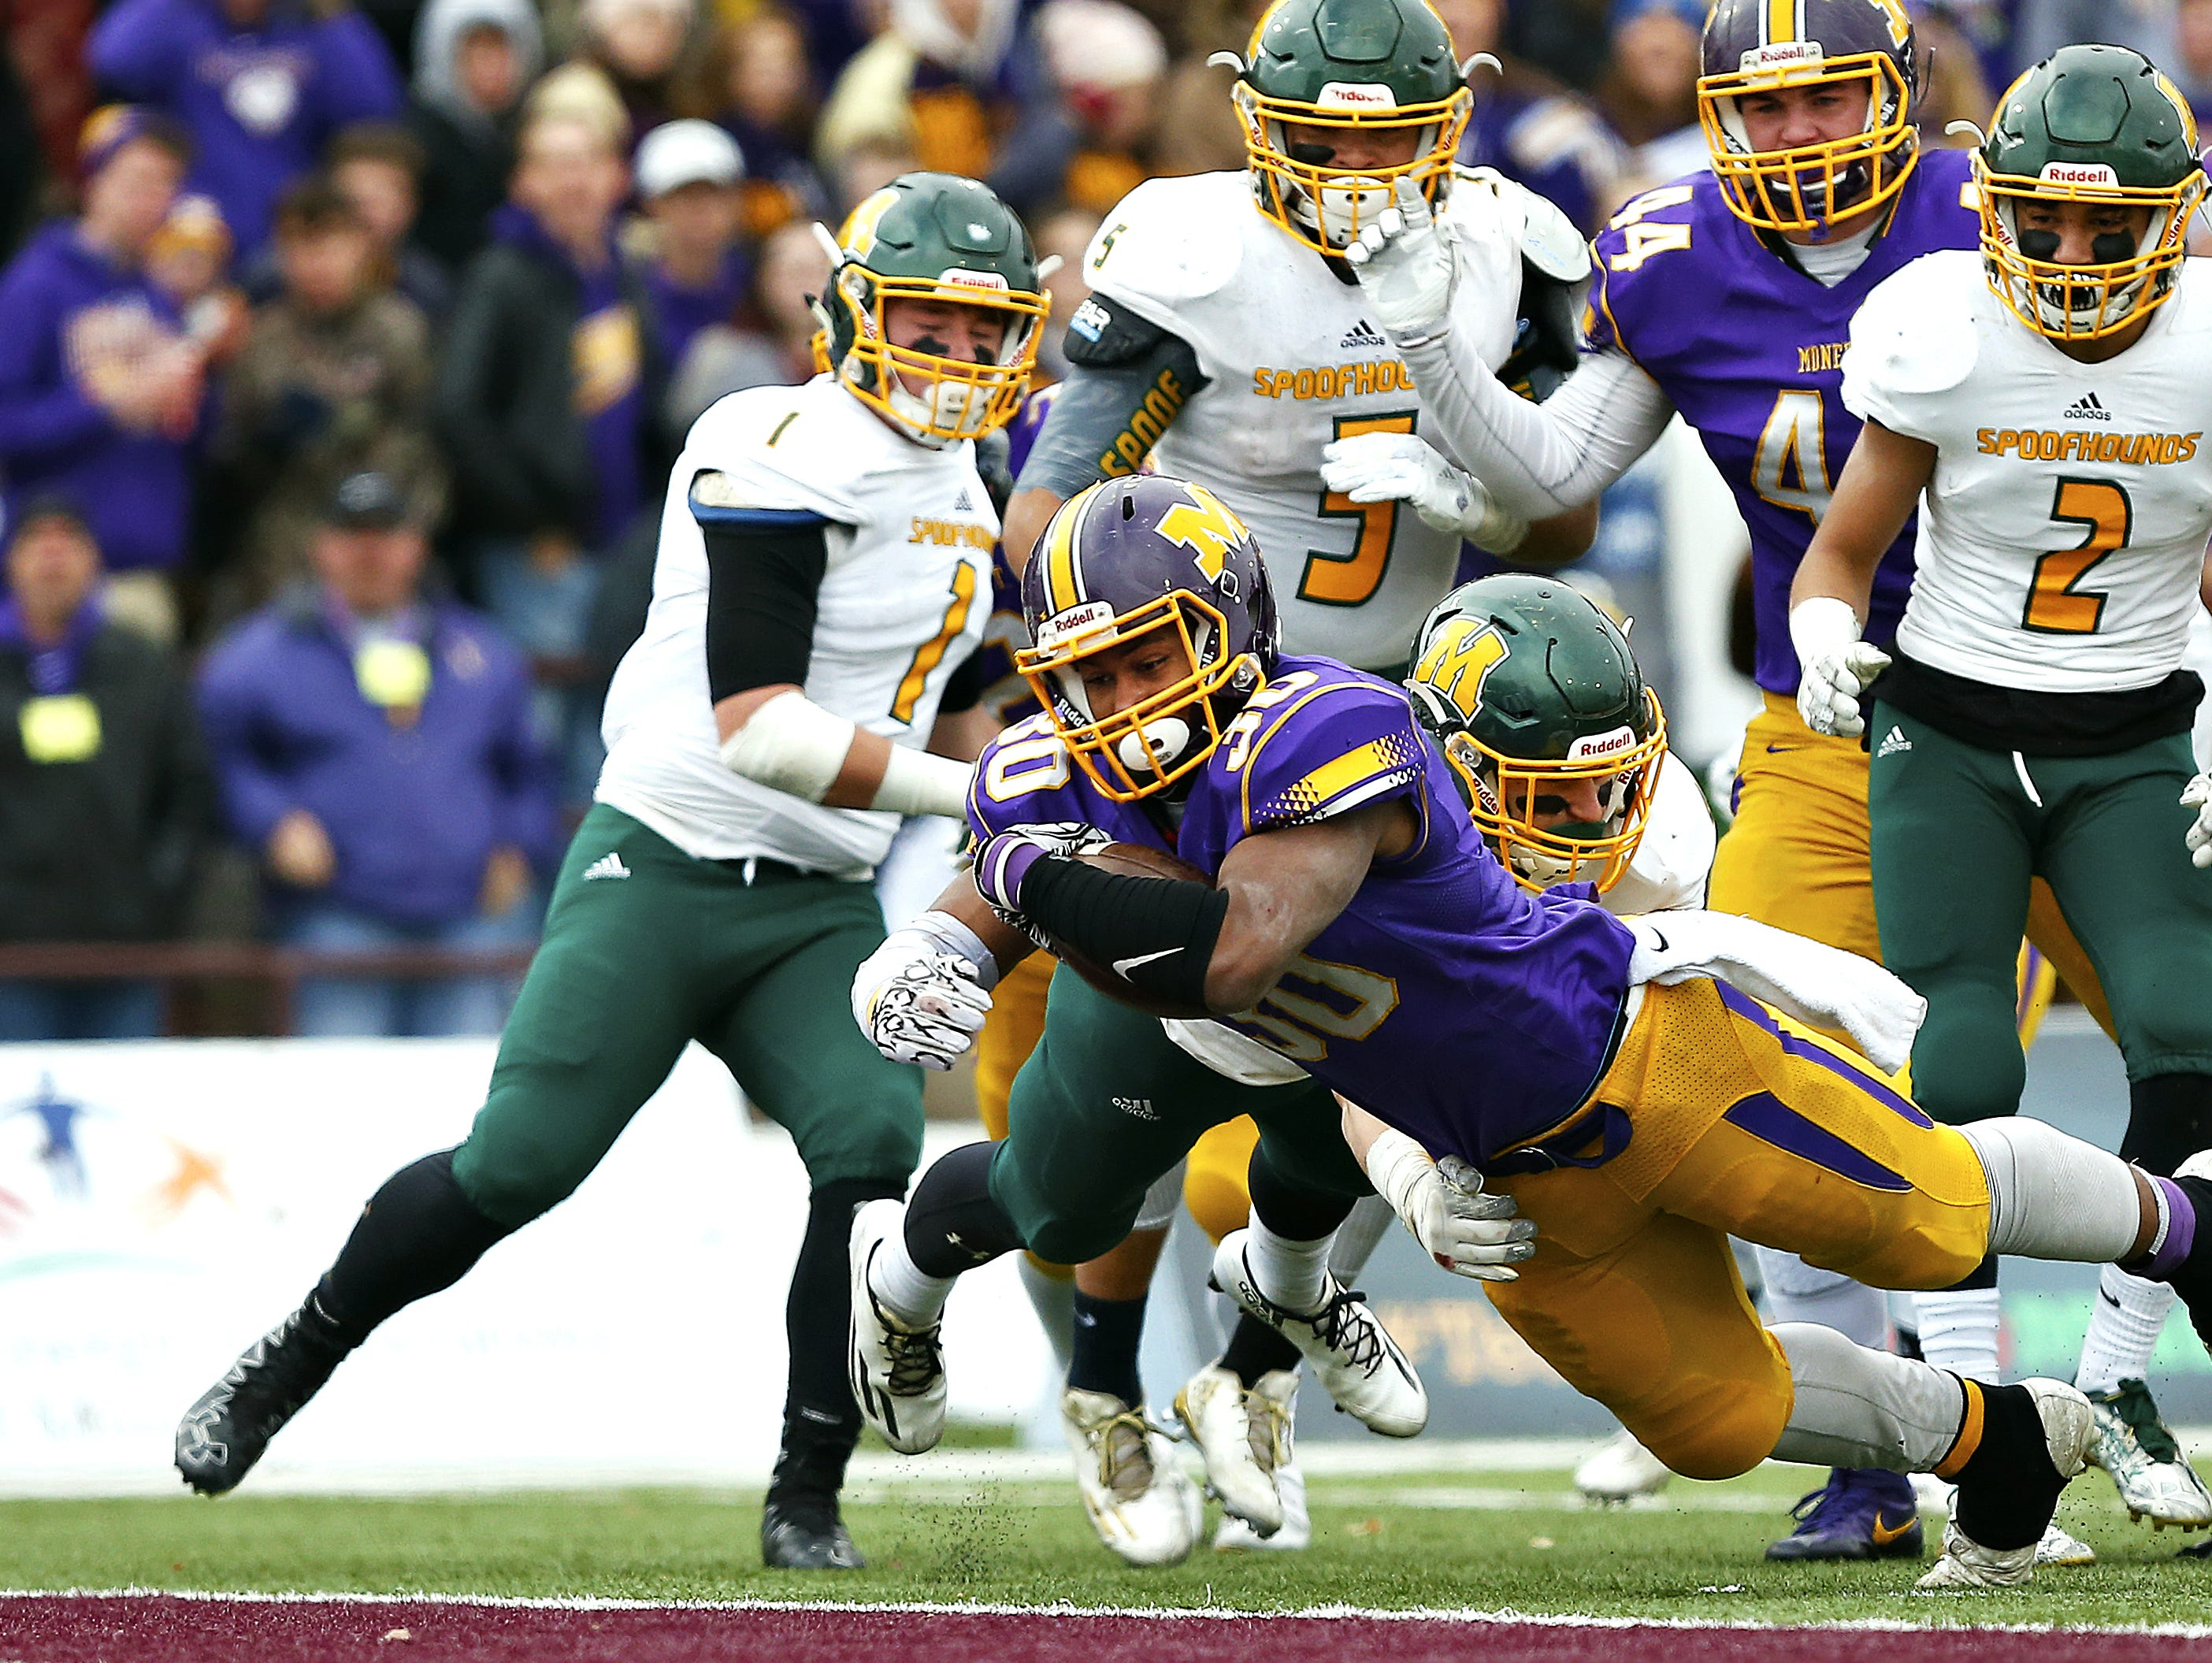 Monett High School running back Michael Branch (30) dives toward the end zone to score a touchdown during the third quarter of the 2016 Missouri Class 3 state championship game between Monett and Maryville at Plaster Stadium. The Cubs won the game 27-18.